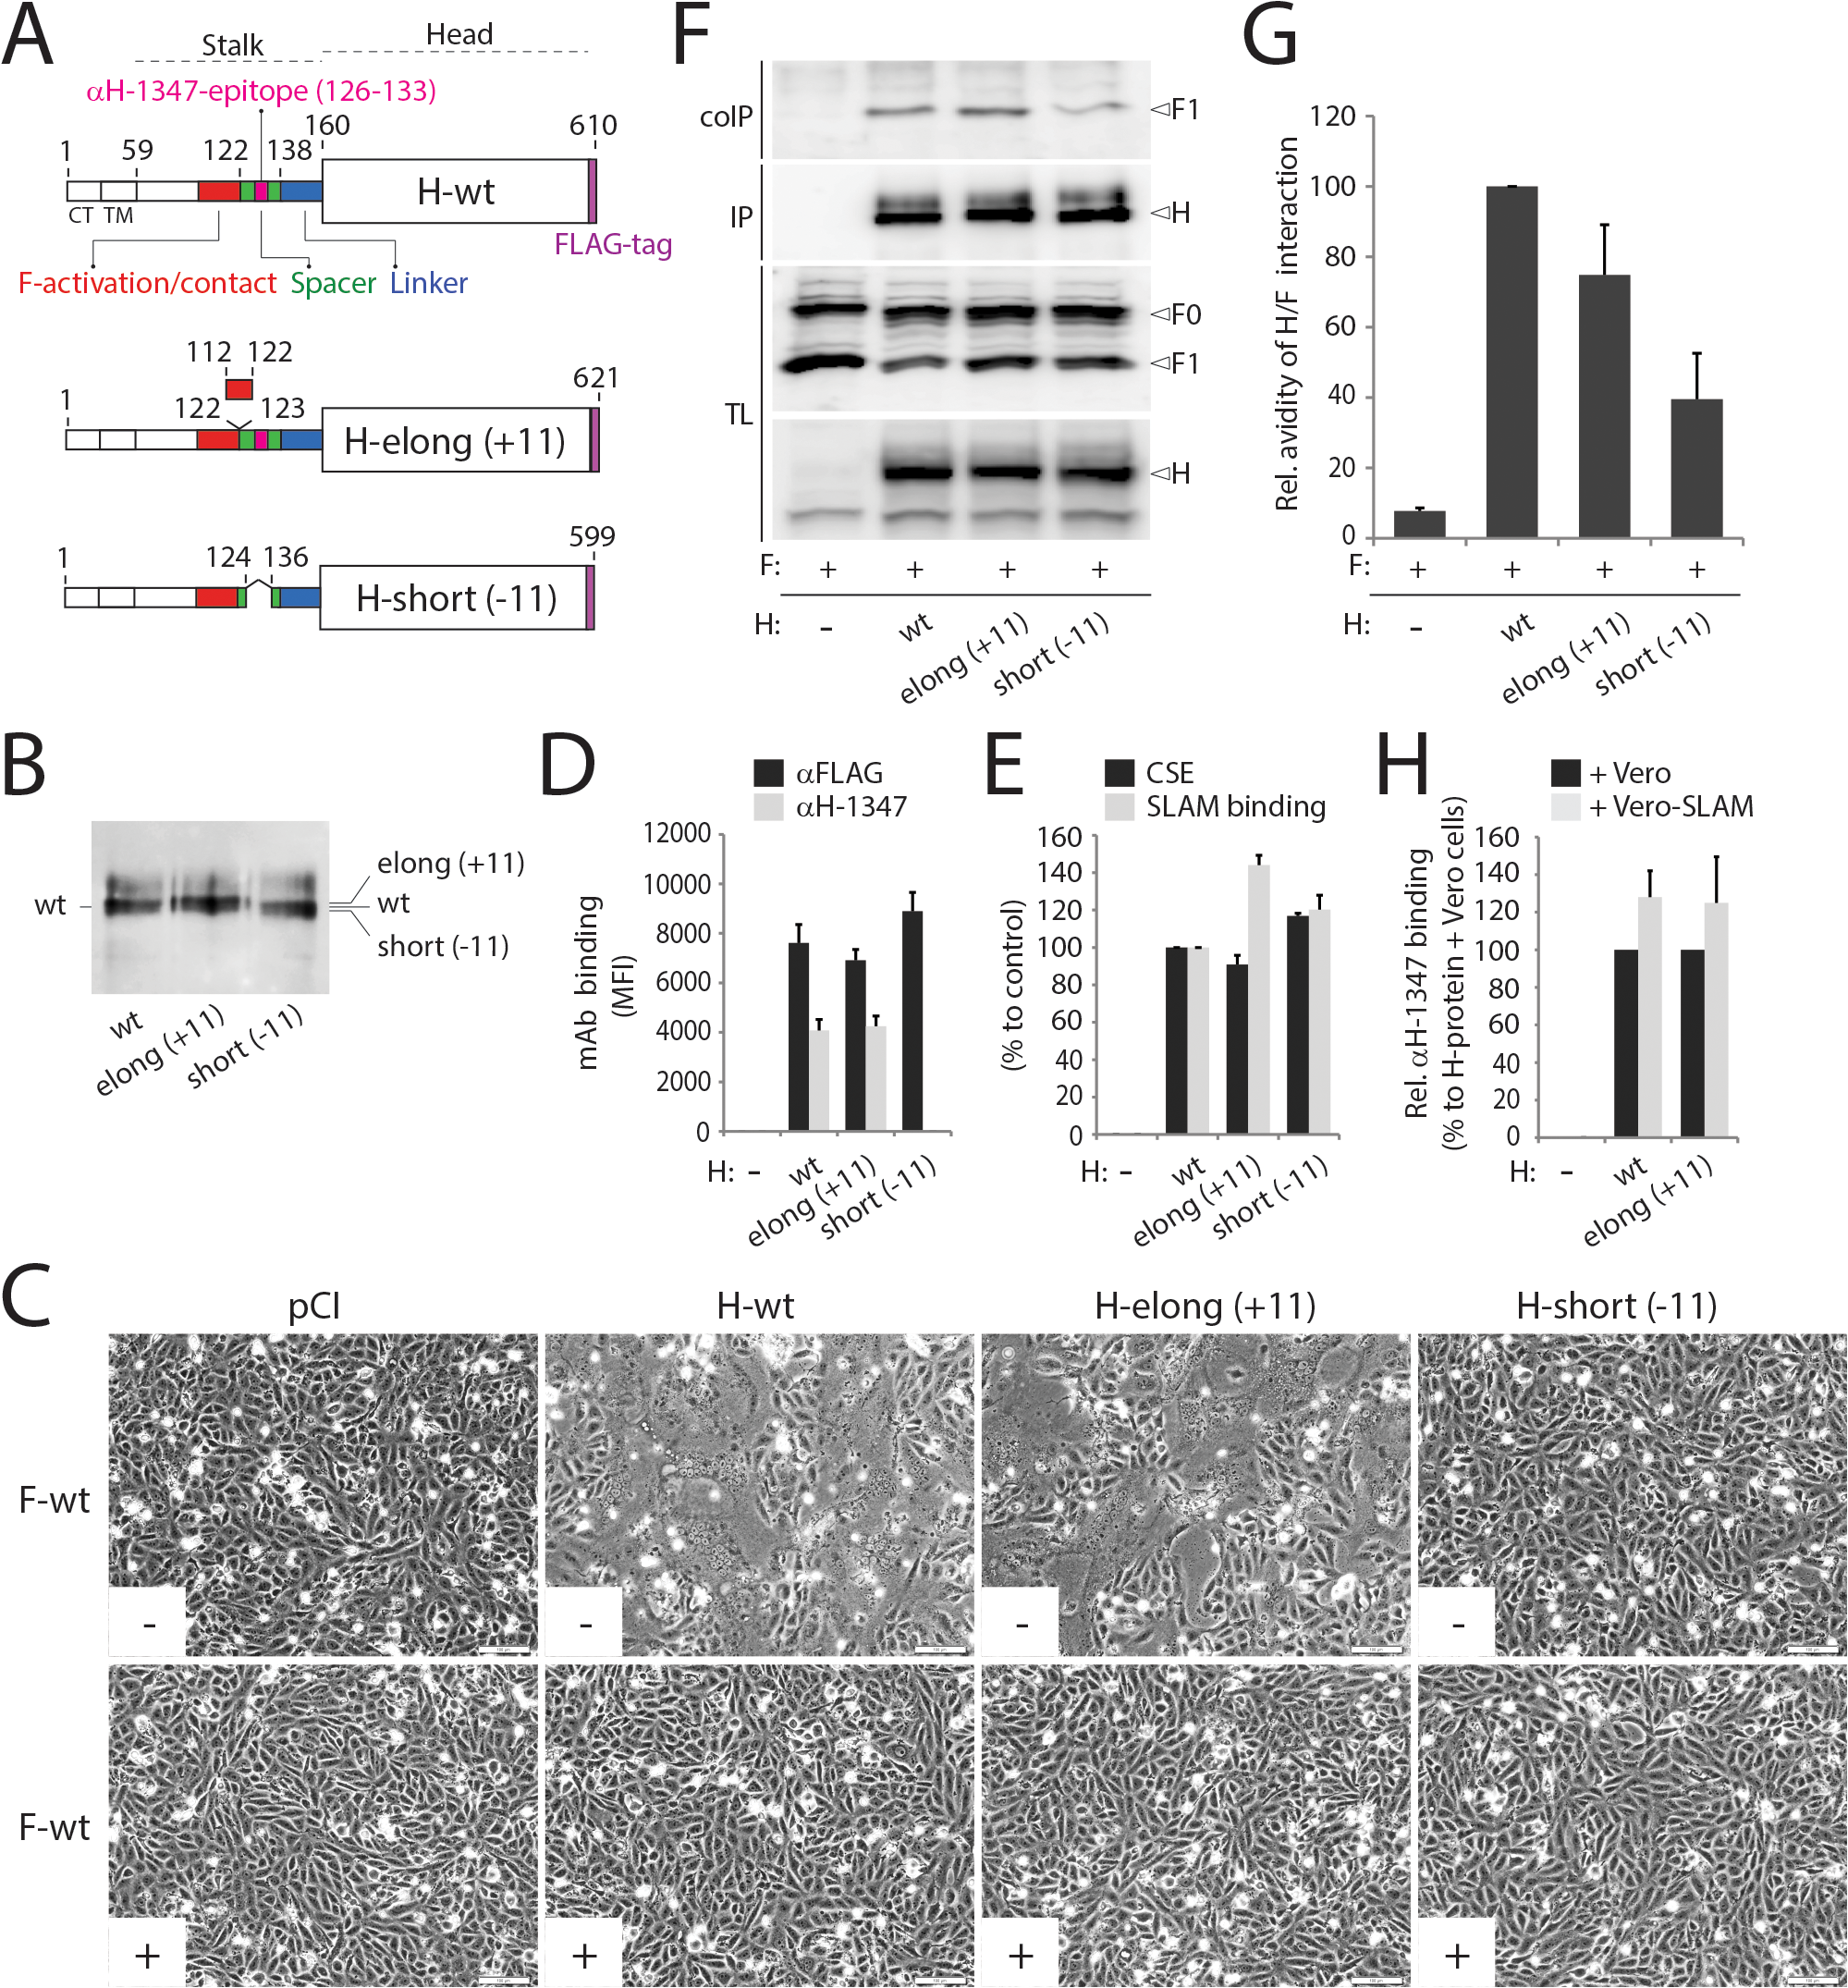 Functional and biochemical characterization of stalk-elongated and shortened engineered H variants.